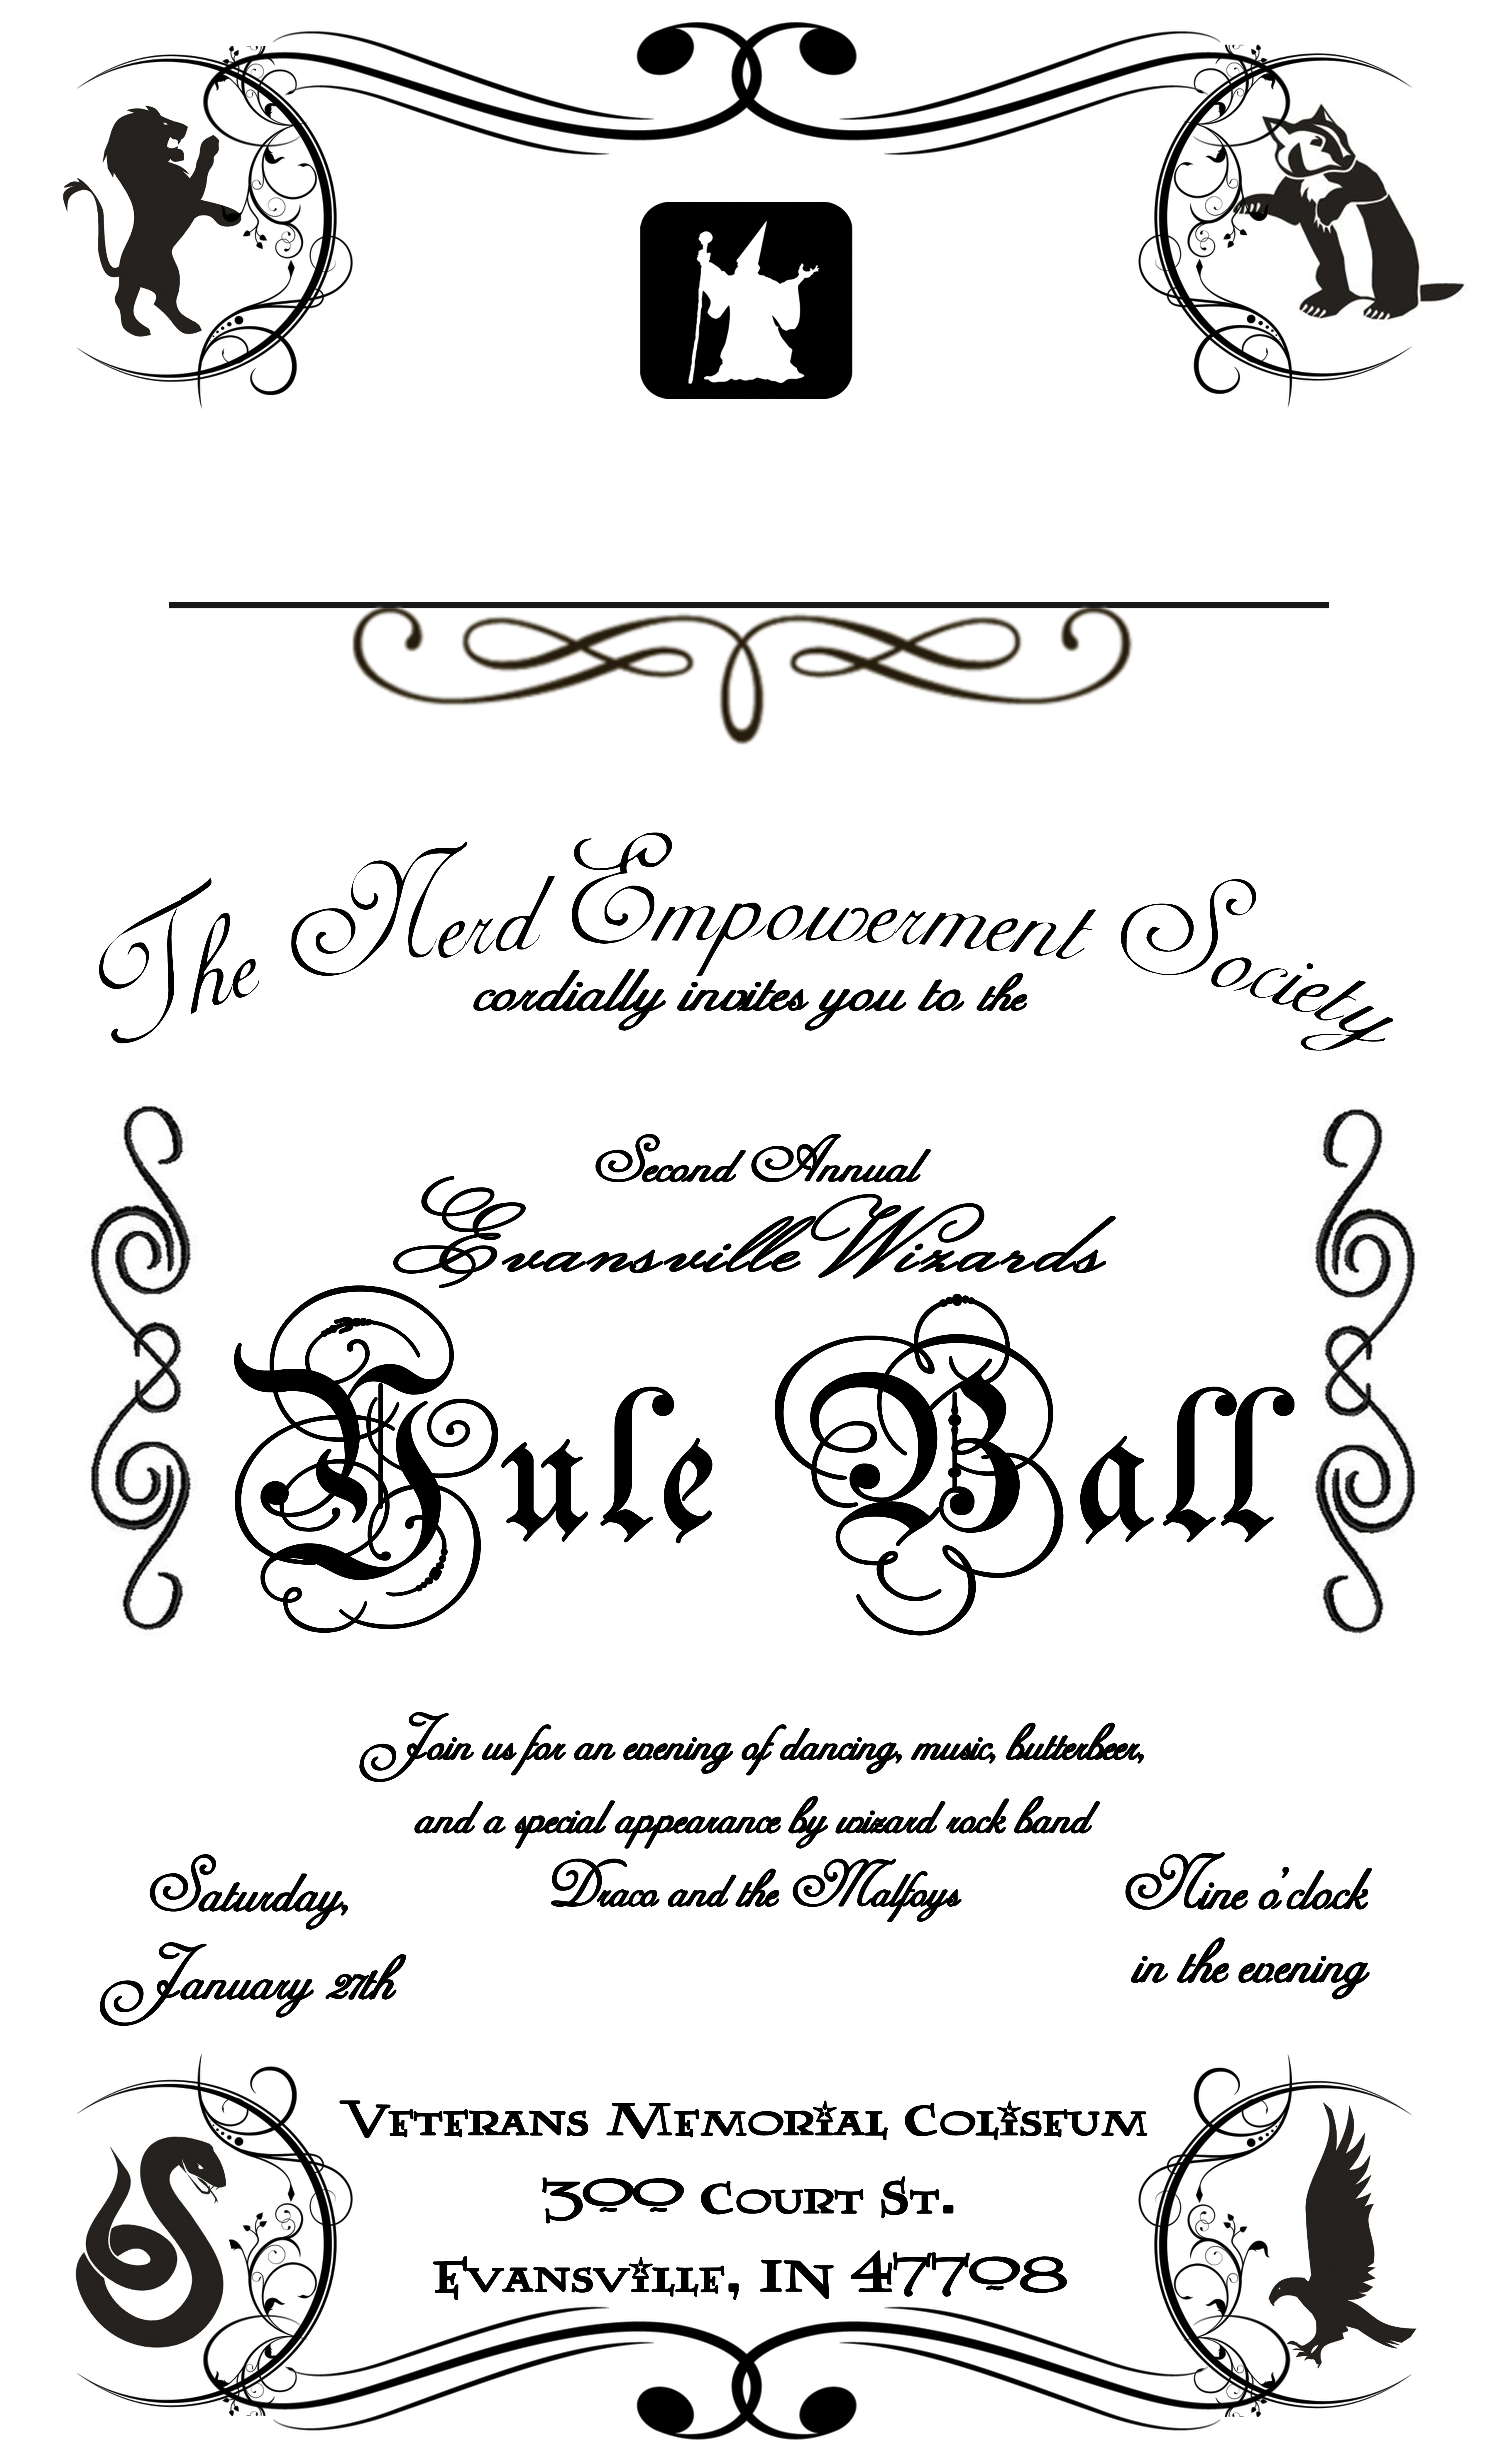 Yule_Ball_Invites_Final